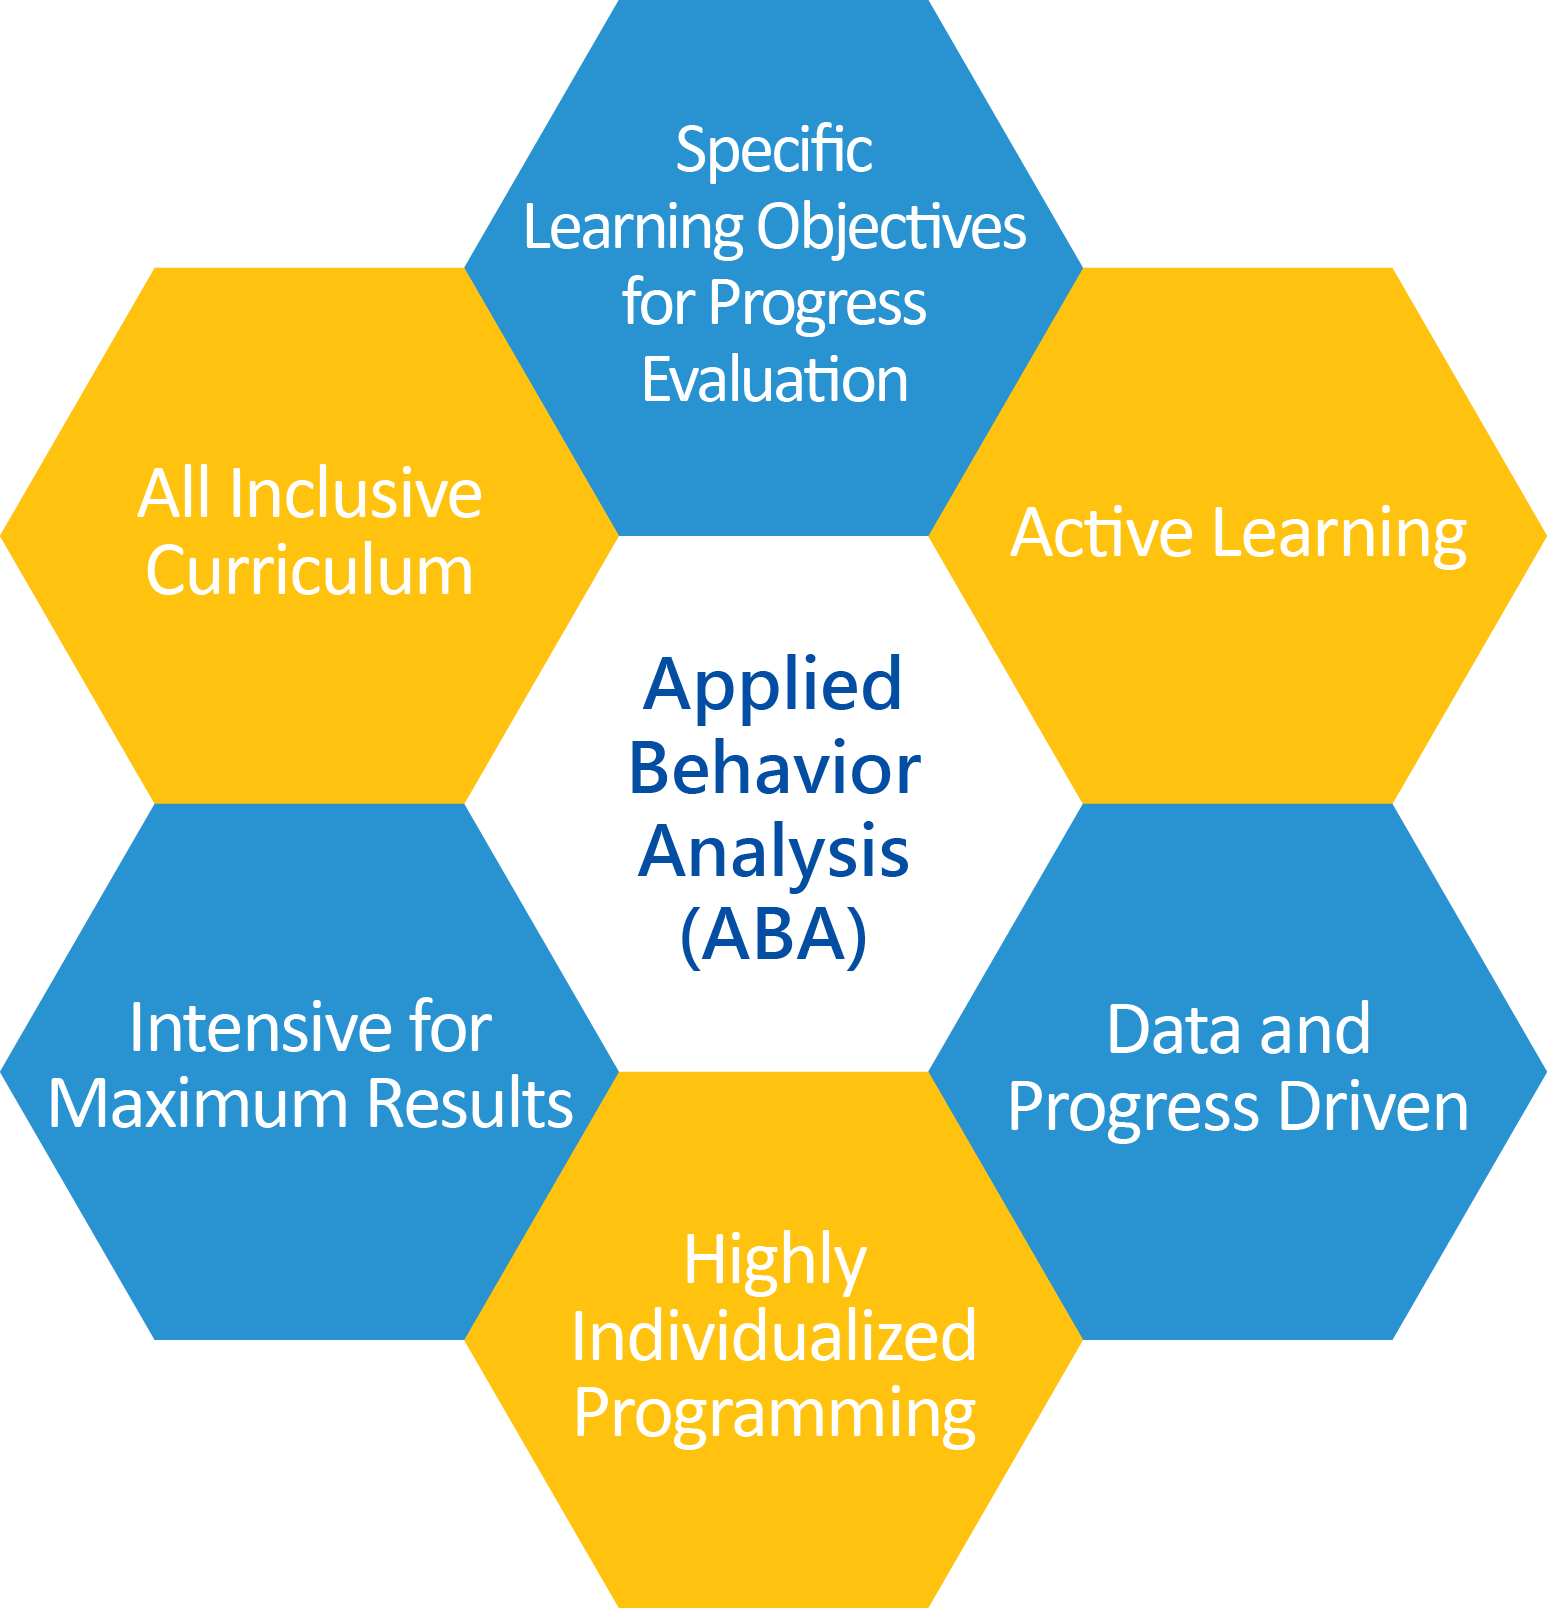 Overview of Applied Behavior Analysis (ABA)